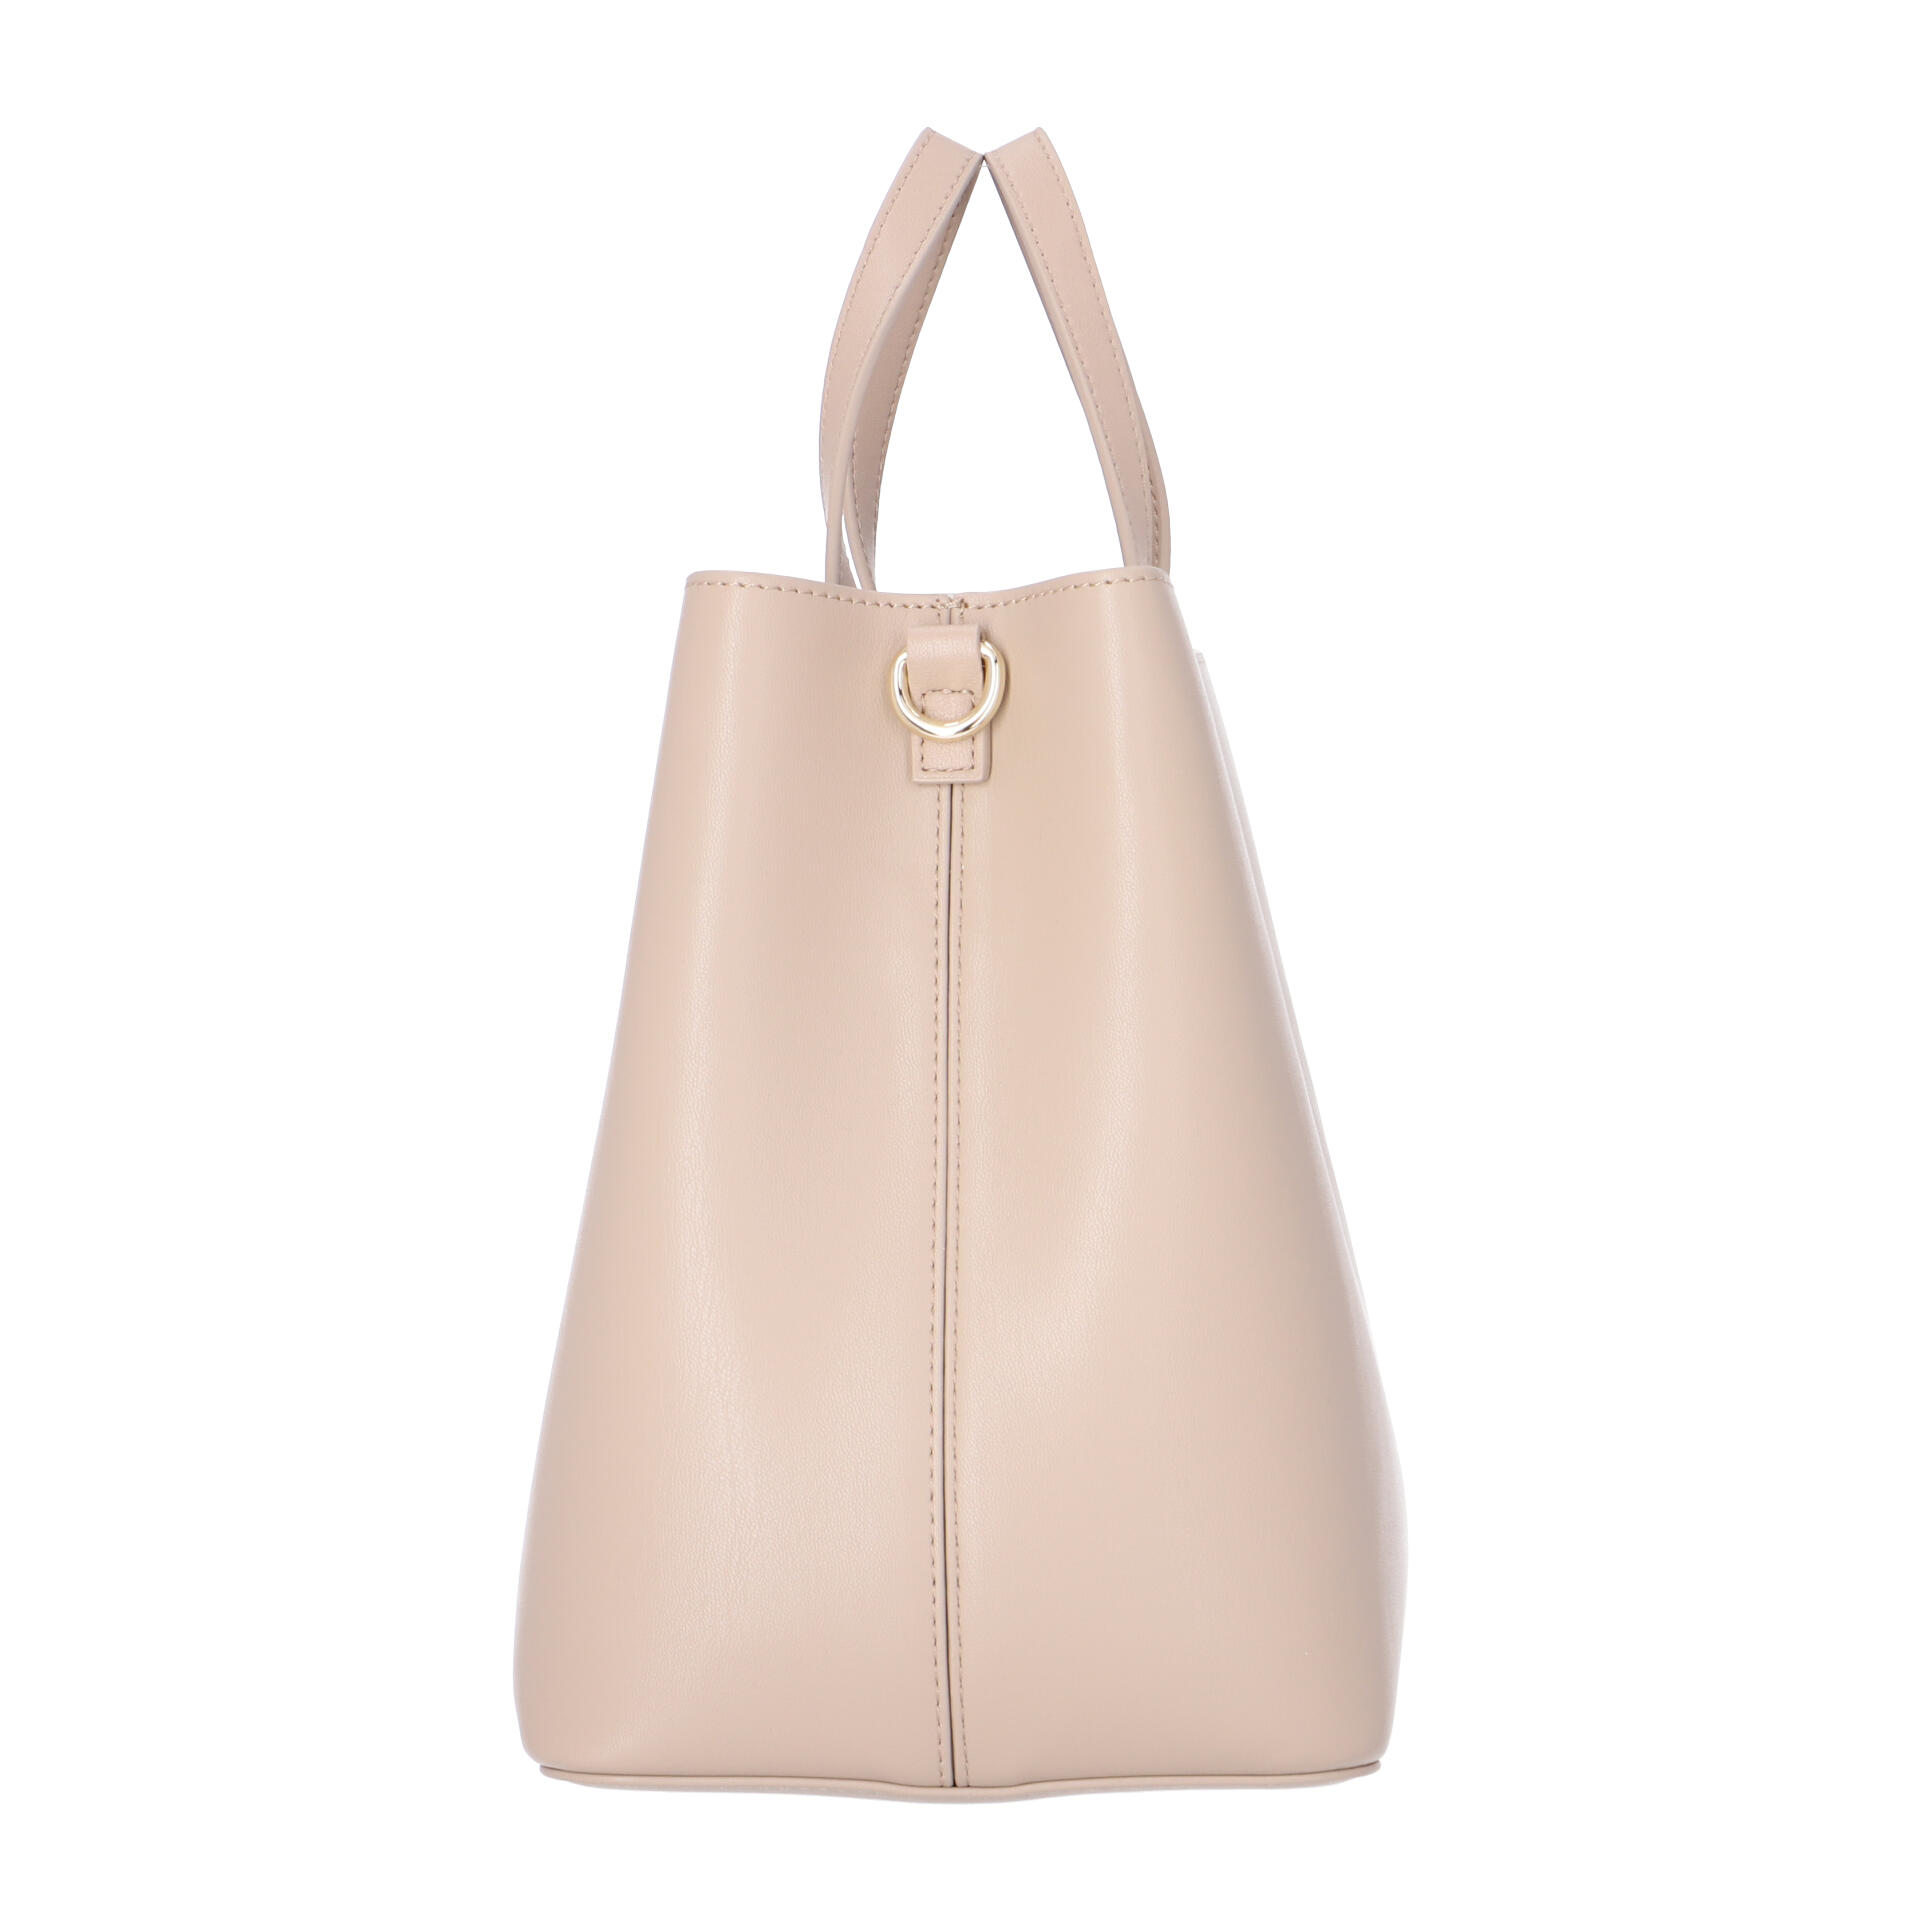 Iconic Tommy Handtasche neutral